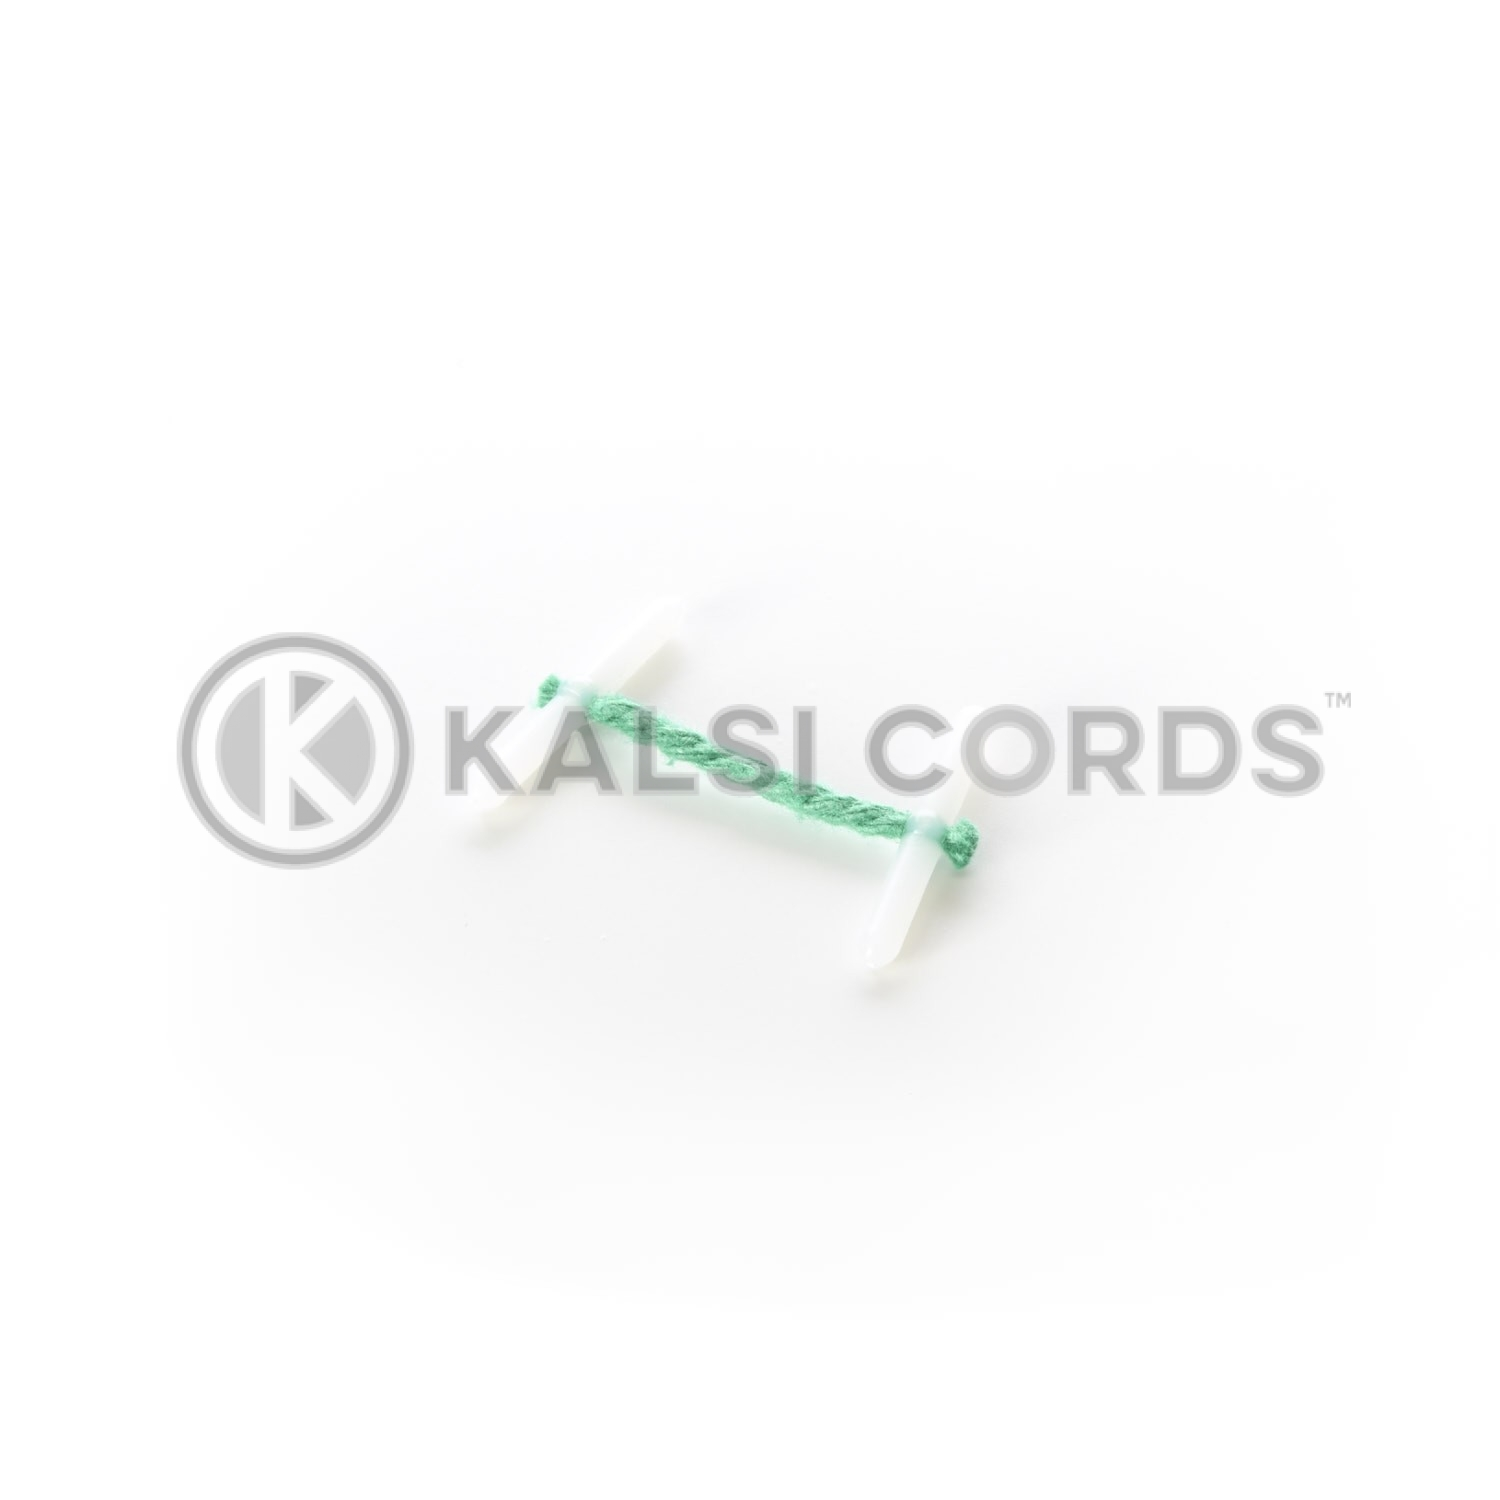 1 Inch 25mm Green Plastic Treasury Tags Cotton T Bar Paper Fasteners Bind Paper Documents Alternative Paper Clips Staples Secure Hold Together Kalsi Cords